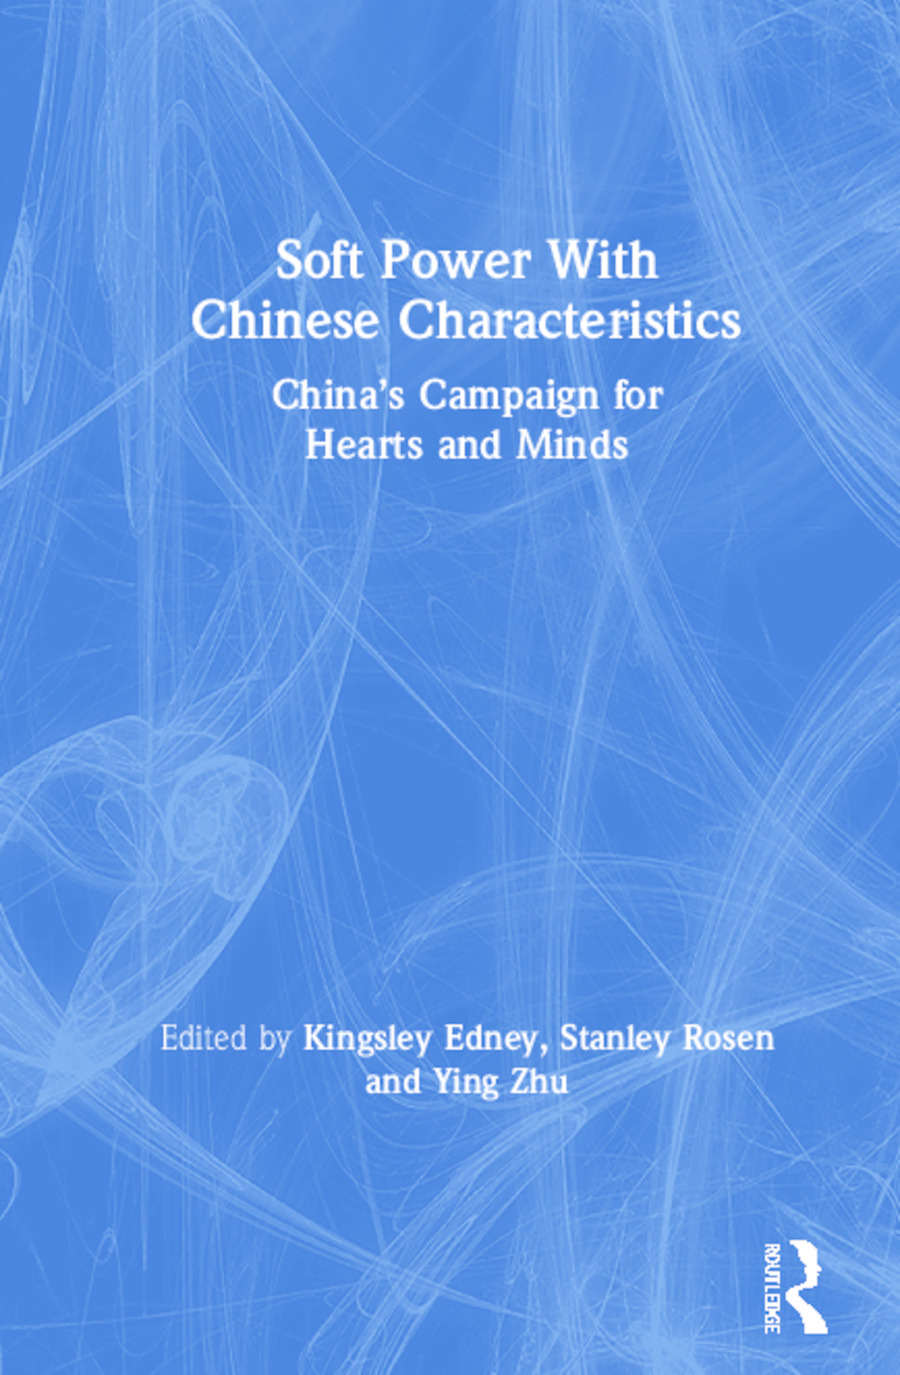 Soft Power With Chinese Characteristics: China's Campaign for Hearts and Minds book cover